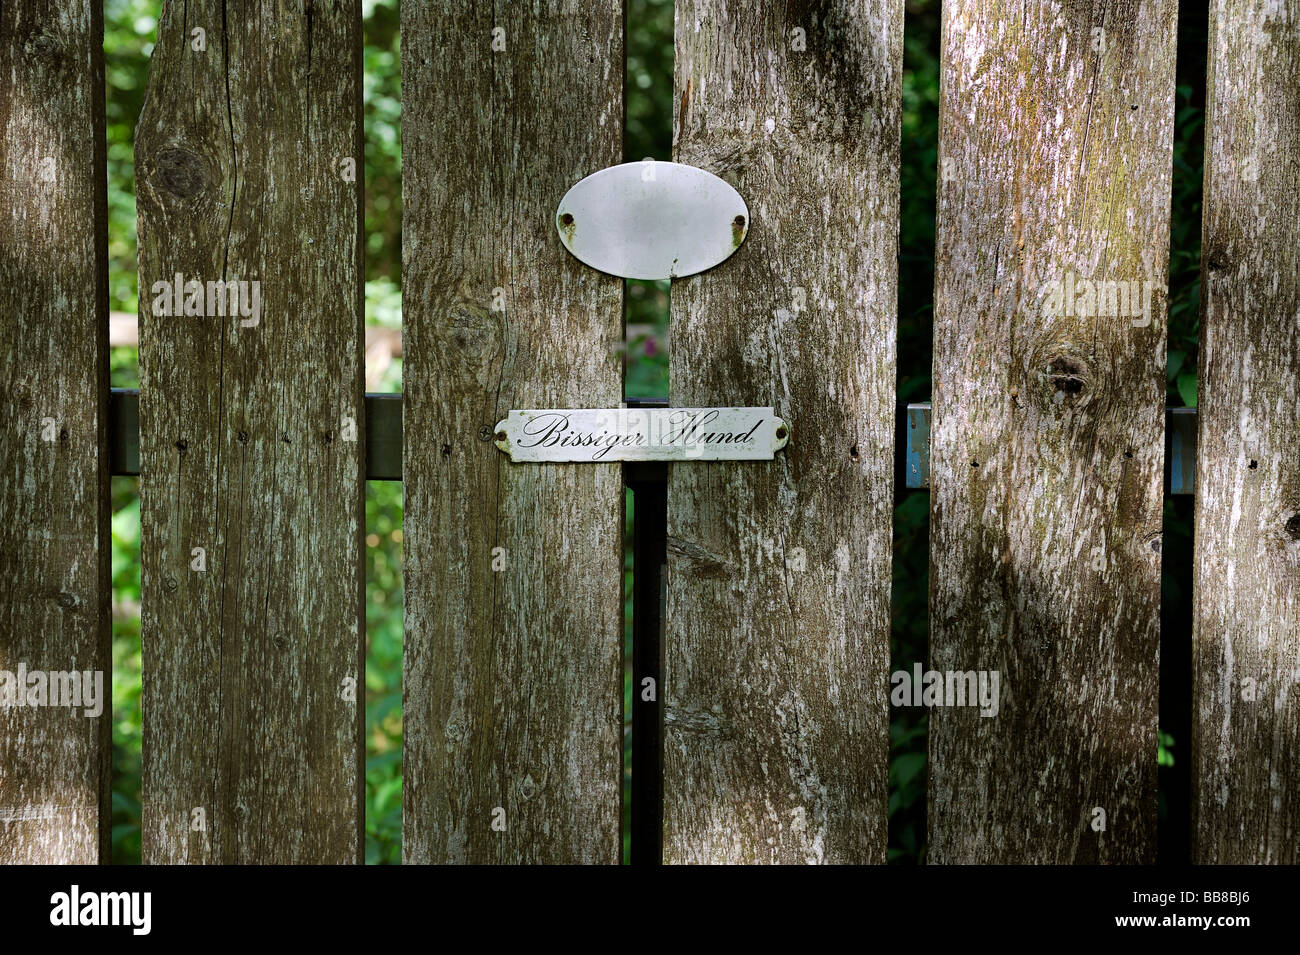 Garden gate with the sign, bissiger Hund, German for vicious dog - Stock Image